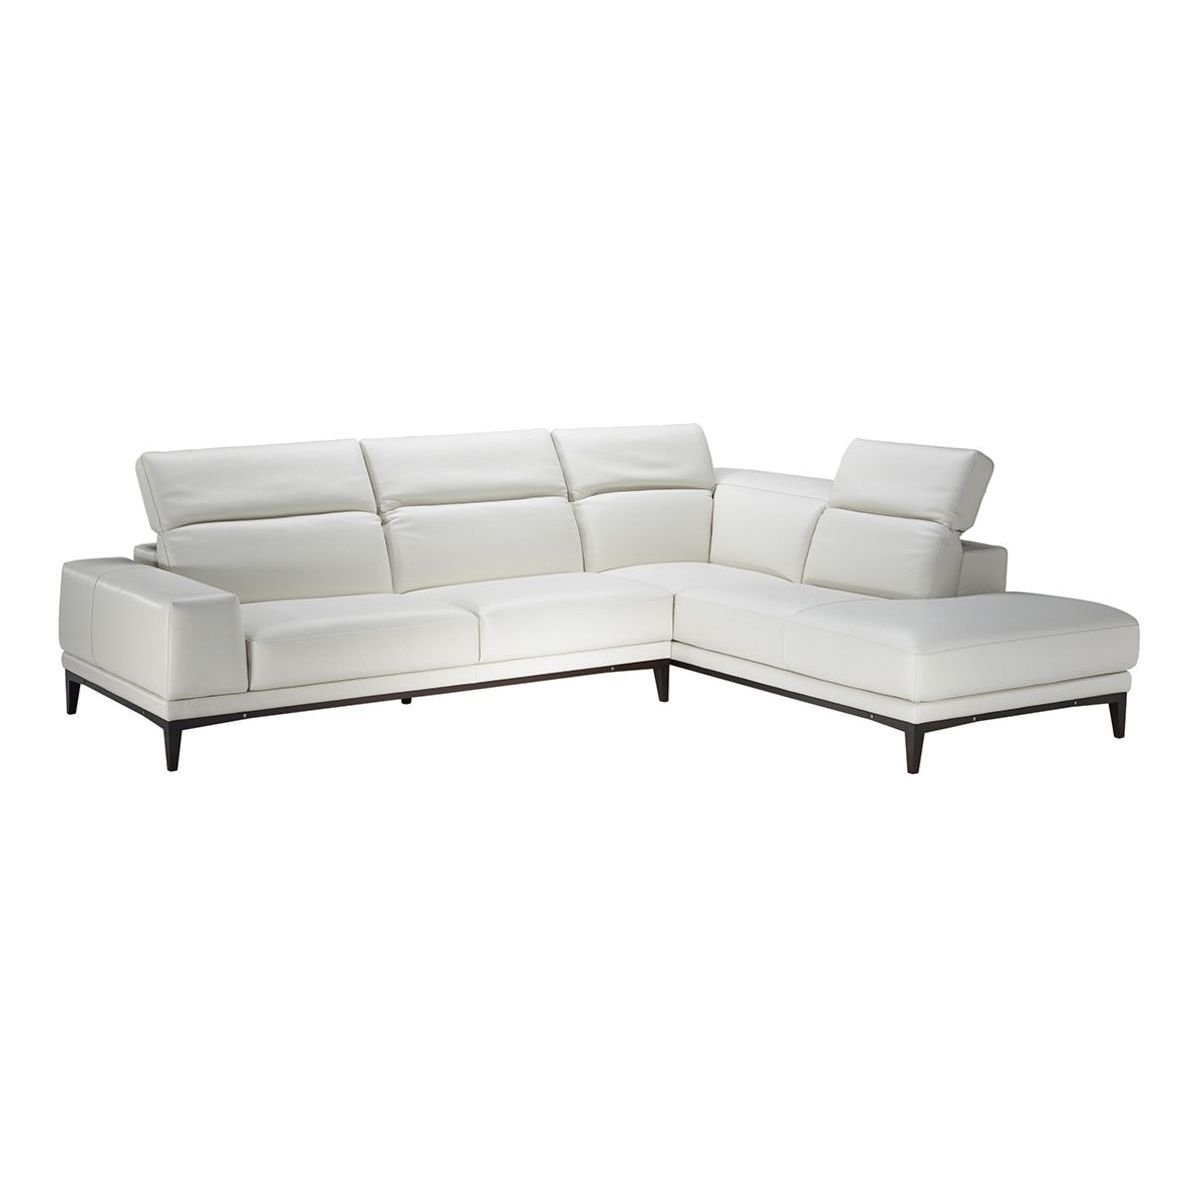 Sof s de piel el corte ingl s for Sofa tres plazas chaise longue